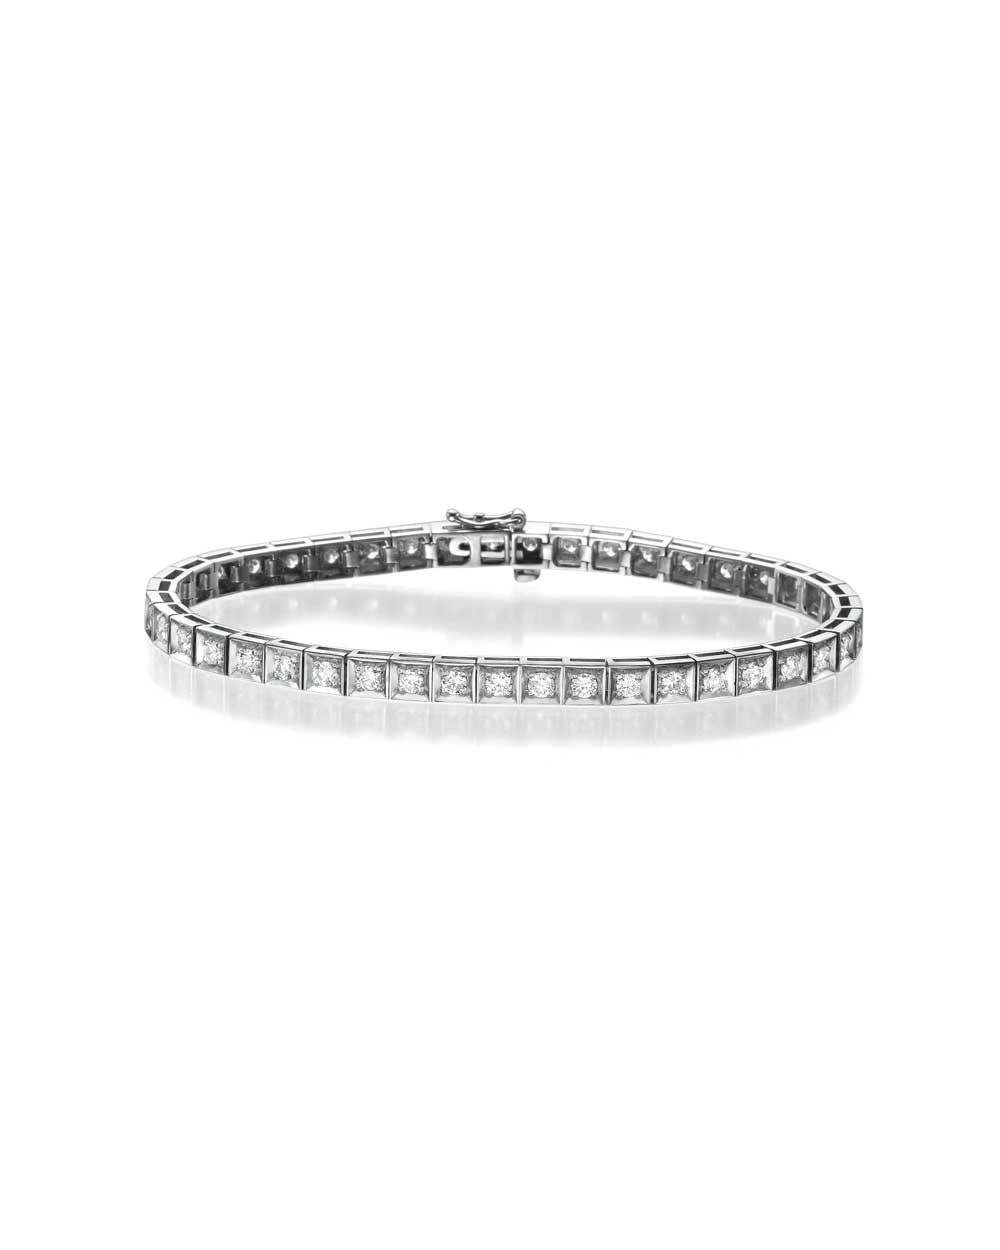 Bracelets Diamond Tennis Bracelet in White Gold - 2.15 carat (0.05ct each) F/VS Quality